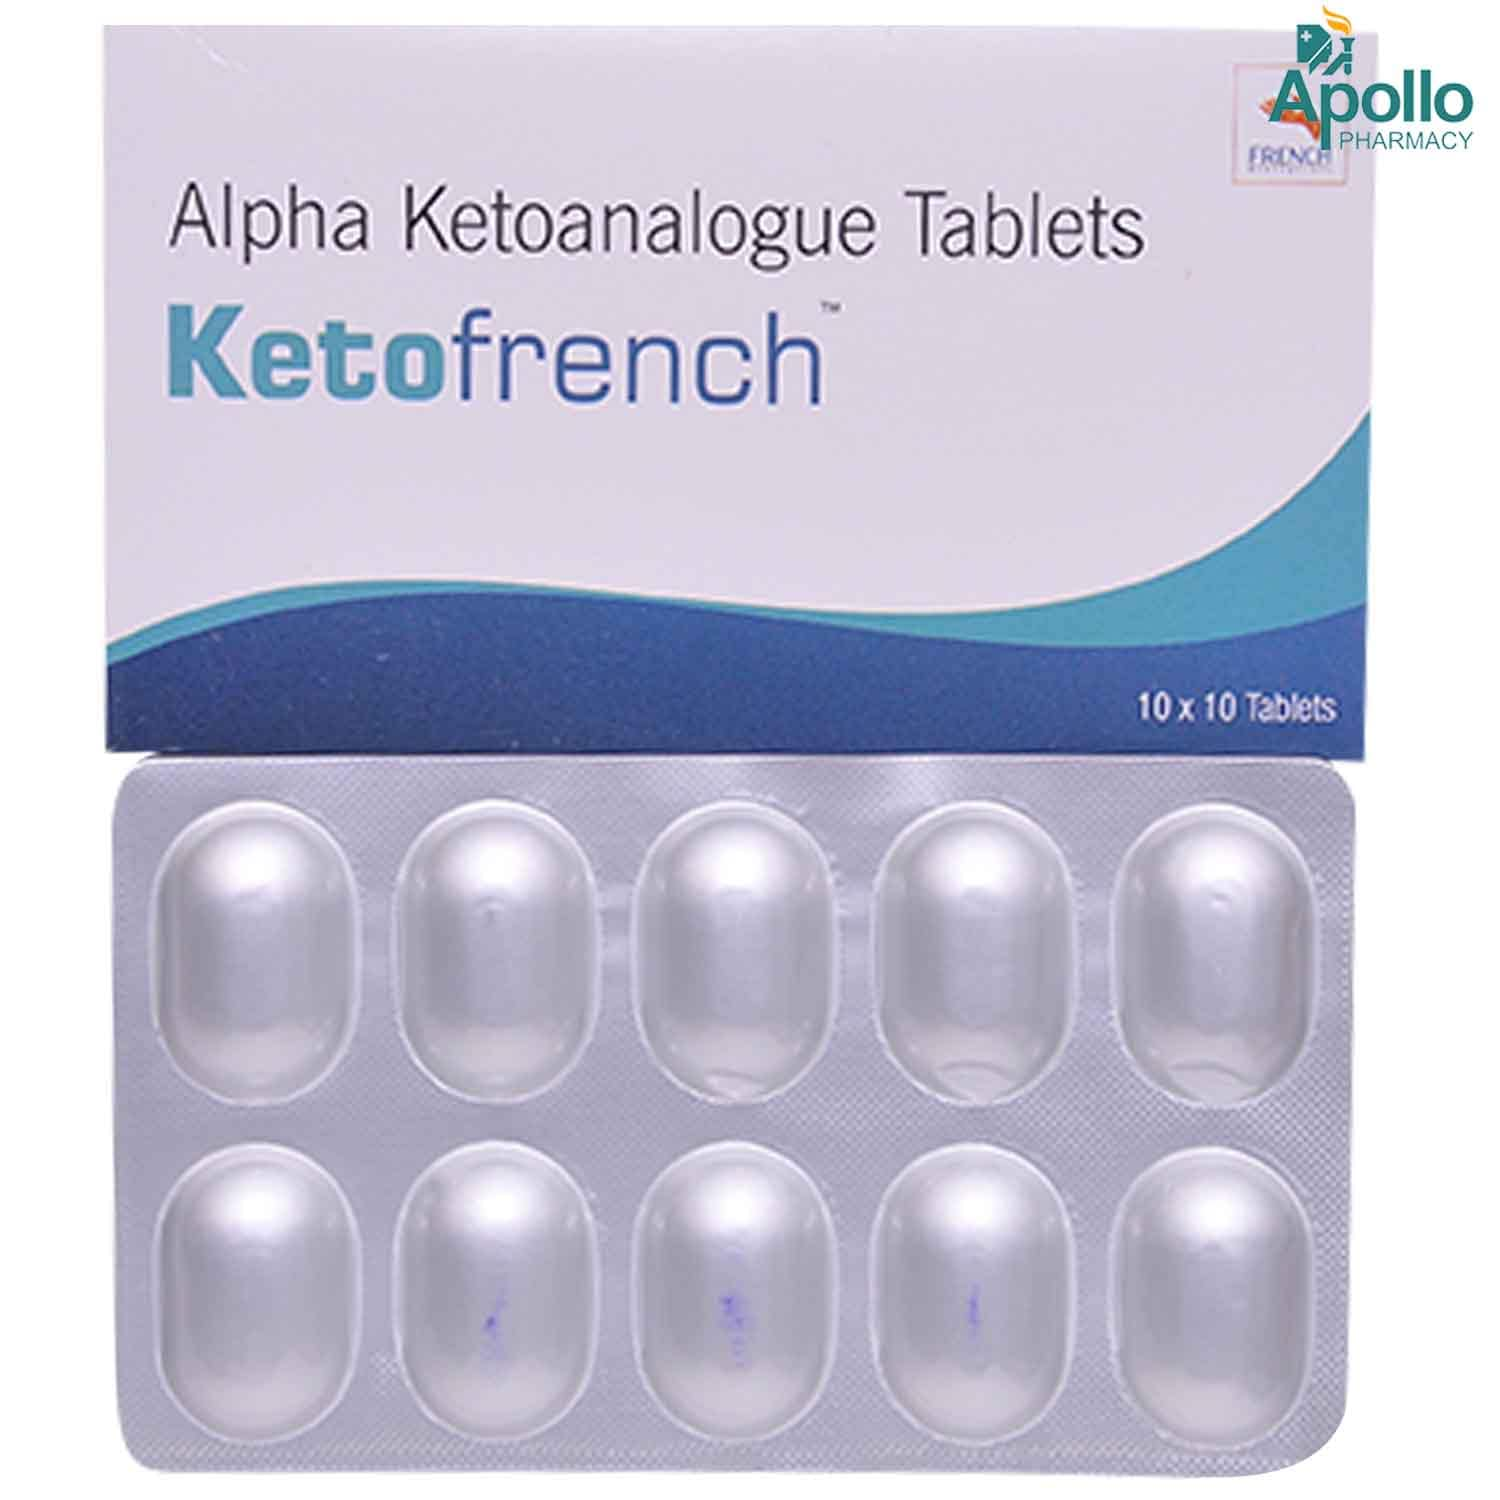 KETOFRENCH TABLET 10'S